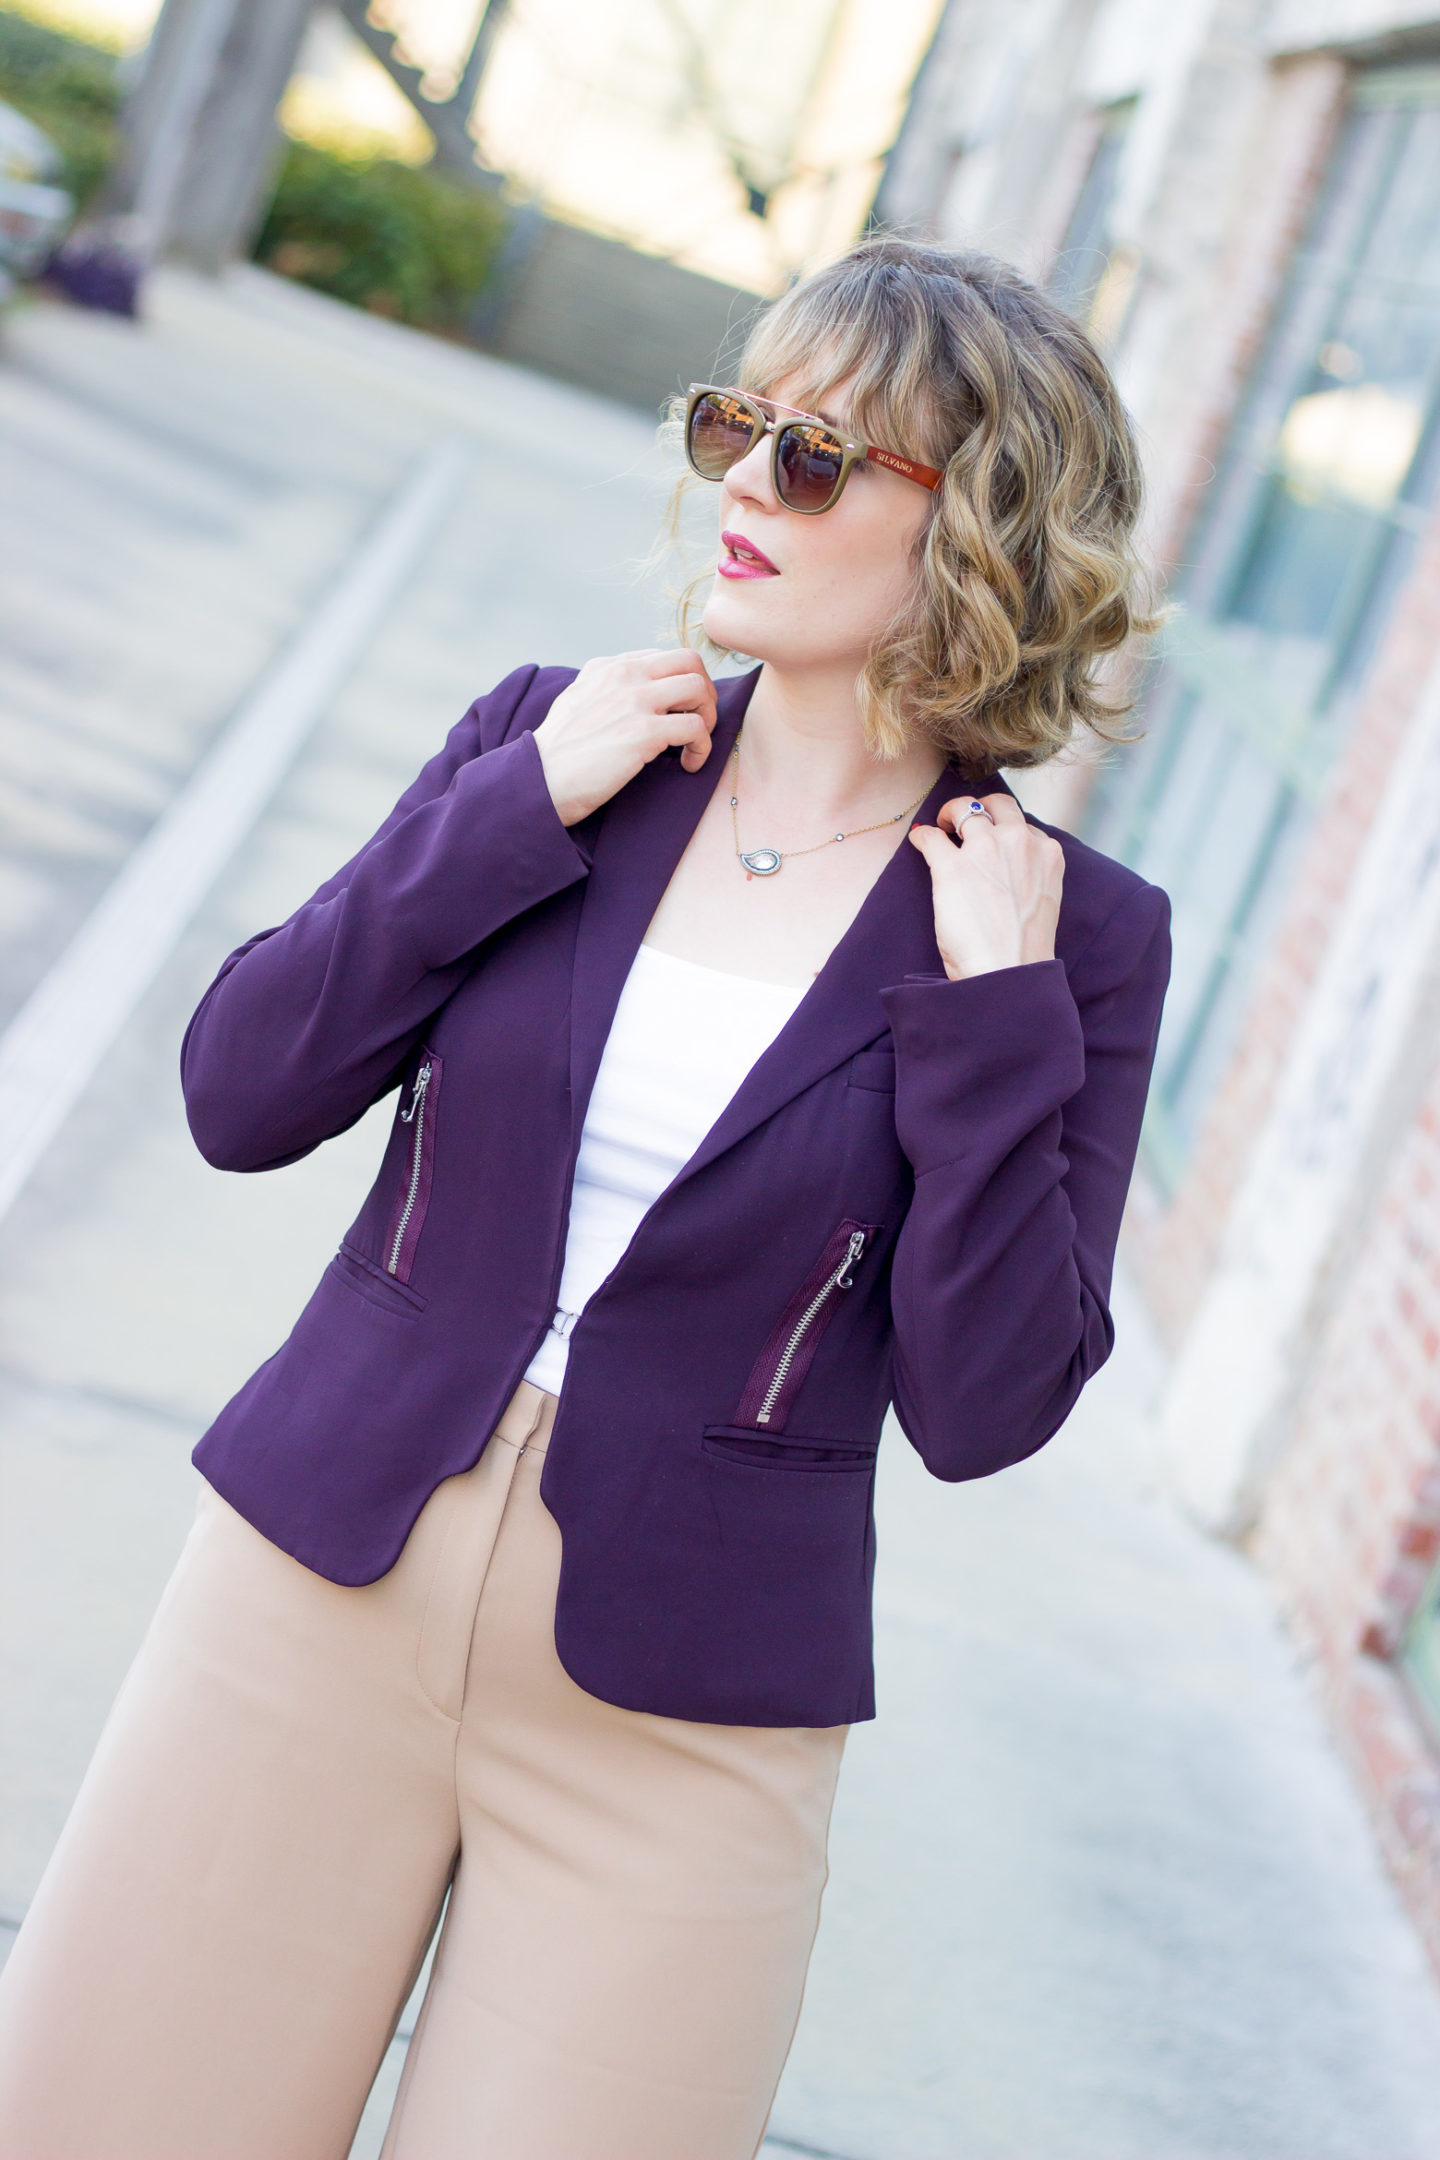 HOW TO BUILD YOUR CORPORATE WARDROBE – A GUEST POST!